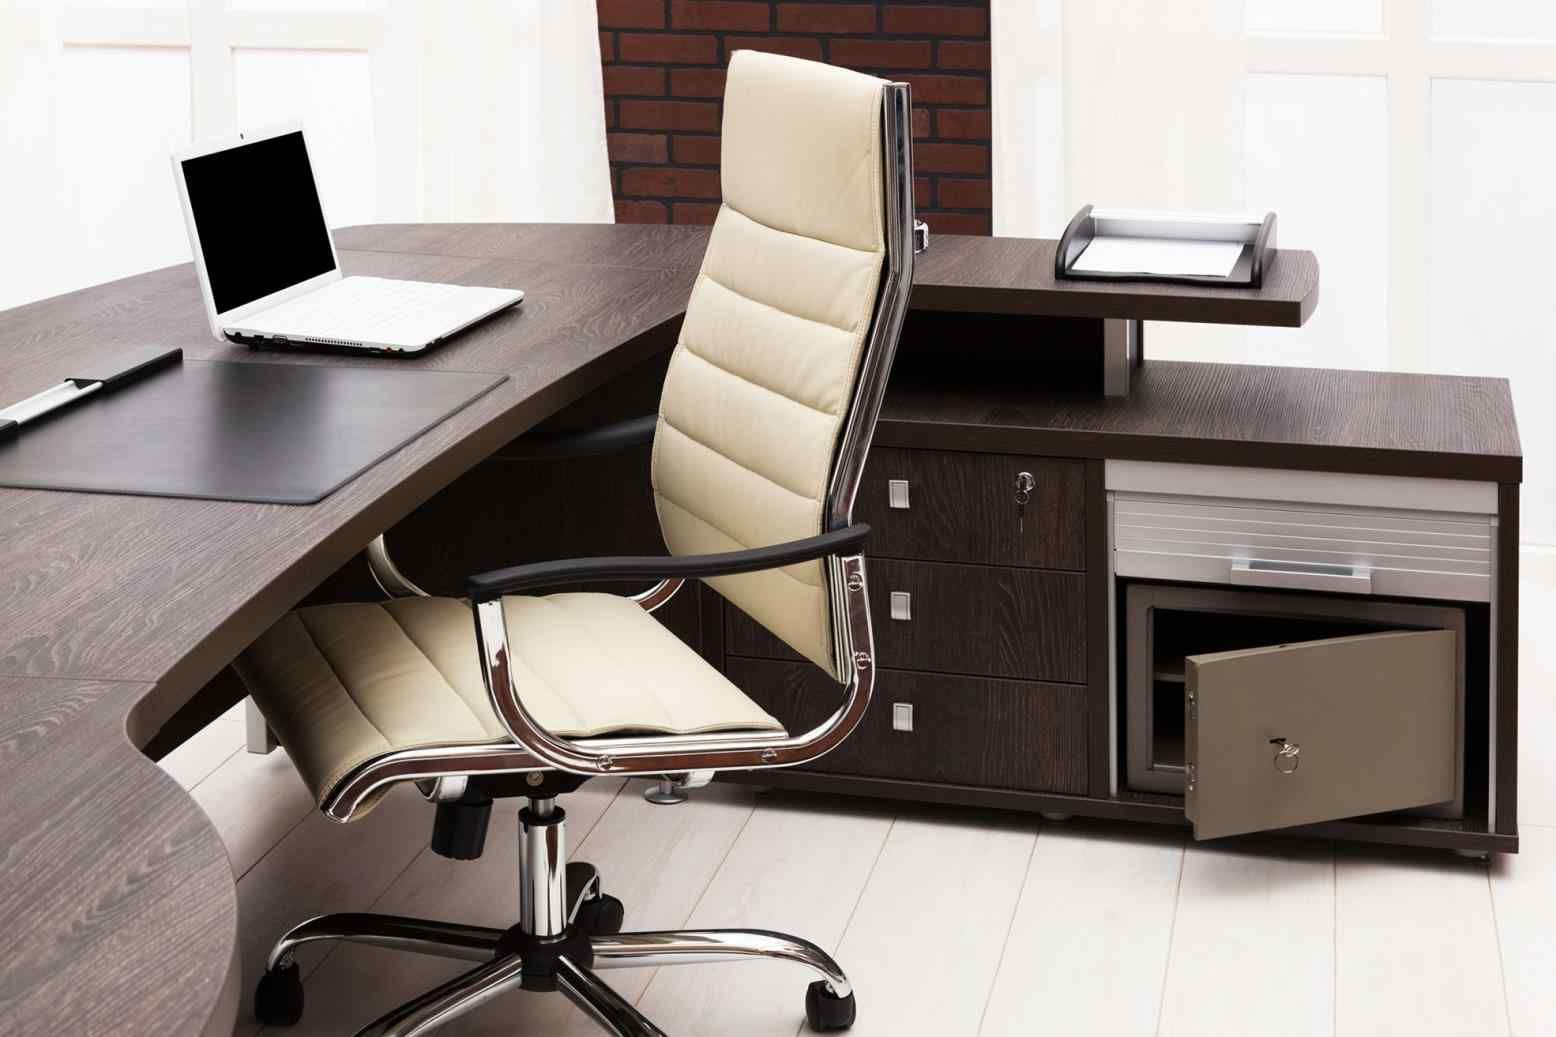 30 Different Types Of Computer Desks For Your Home Office Ultimate Guide Types Of Foldin Office Furniture Modern Home Office Furniture Used Office Furniture